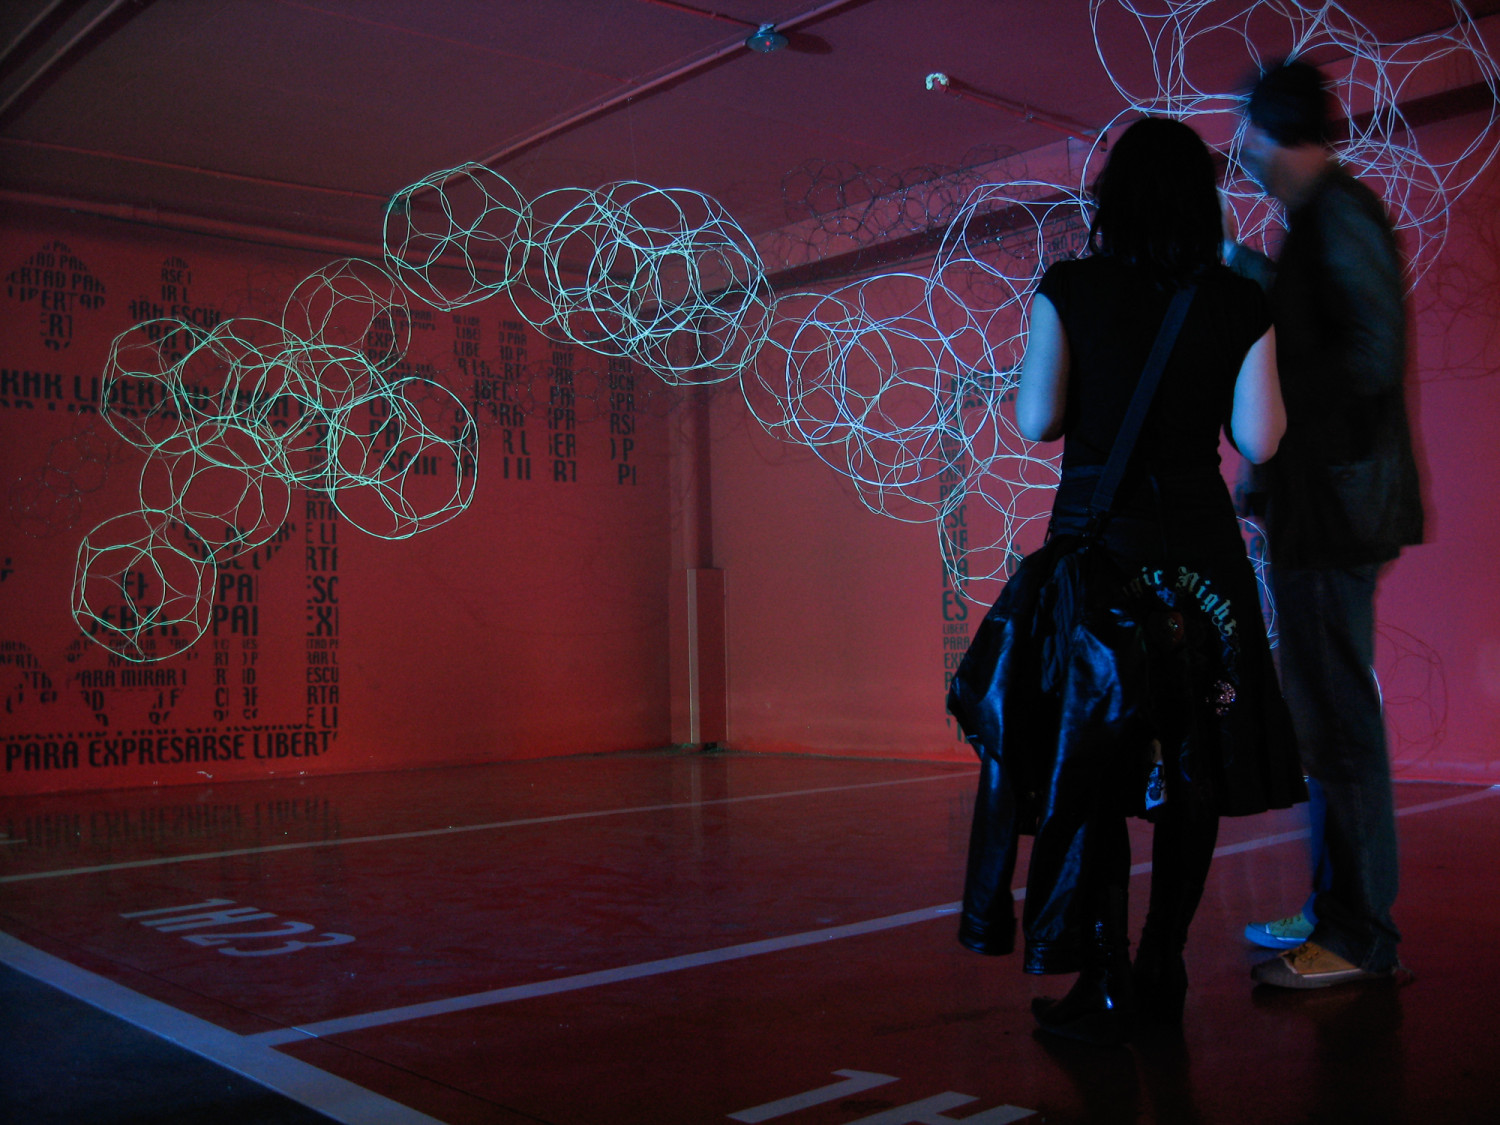 The Silken Hotel Puerta de America of Madrid was transformed into the world of Loop.pH with molecular structures and immersive light displays.